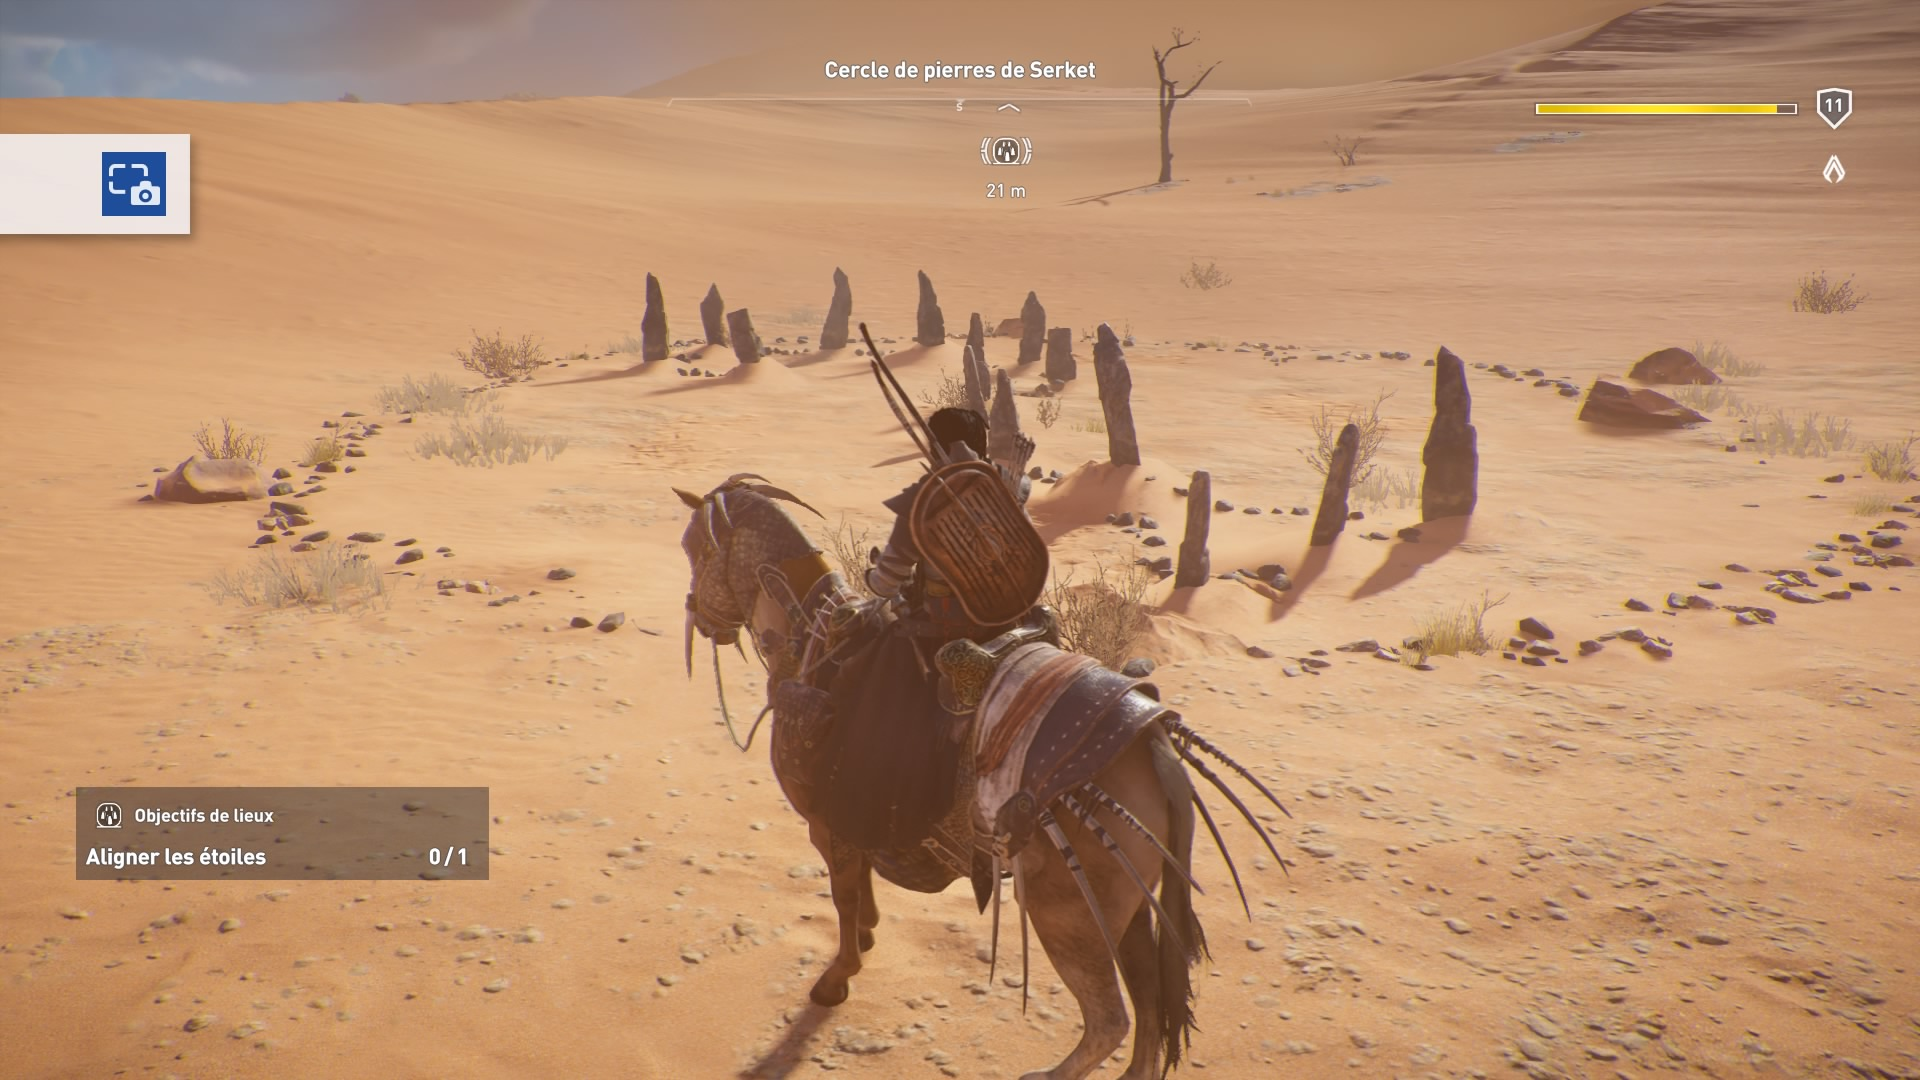 Assassin's Creed Origins - Emplacement cercles de pierres